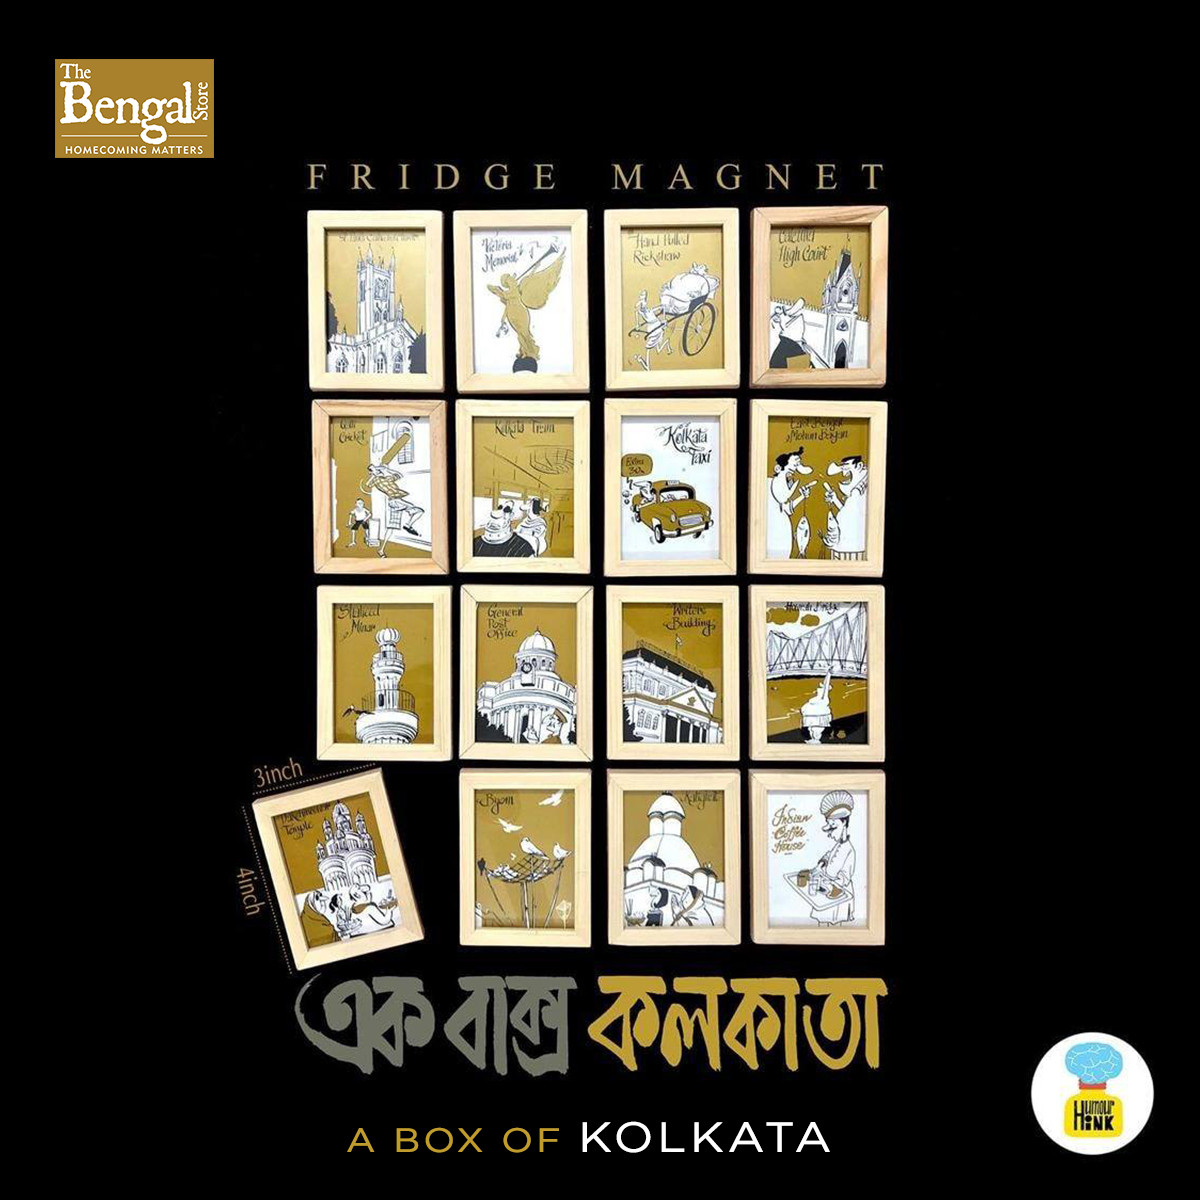 A Box of Kolkata- Set of 16 Fridge Magnets